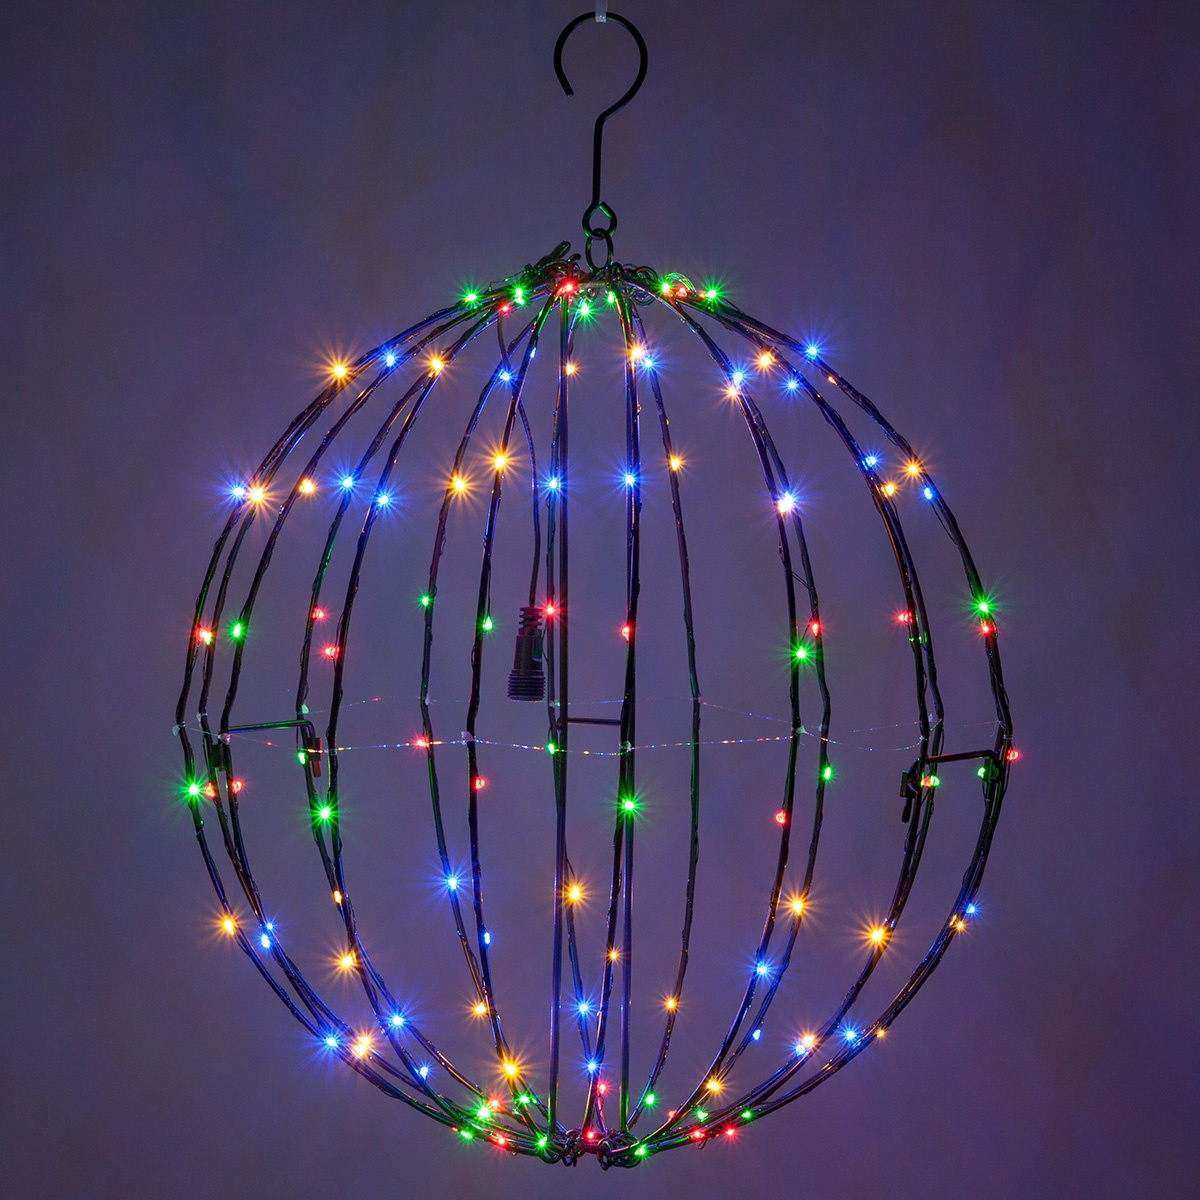 Outdoor String Lights For Trees Multicolor Led Fairy Christmas Light Ball, Fold Flat Black